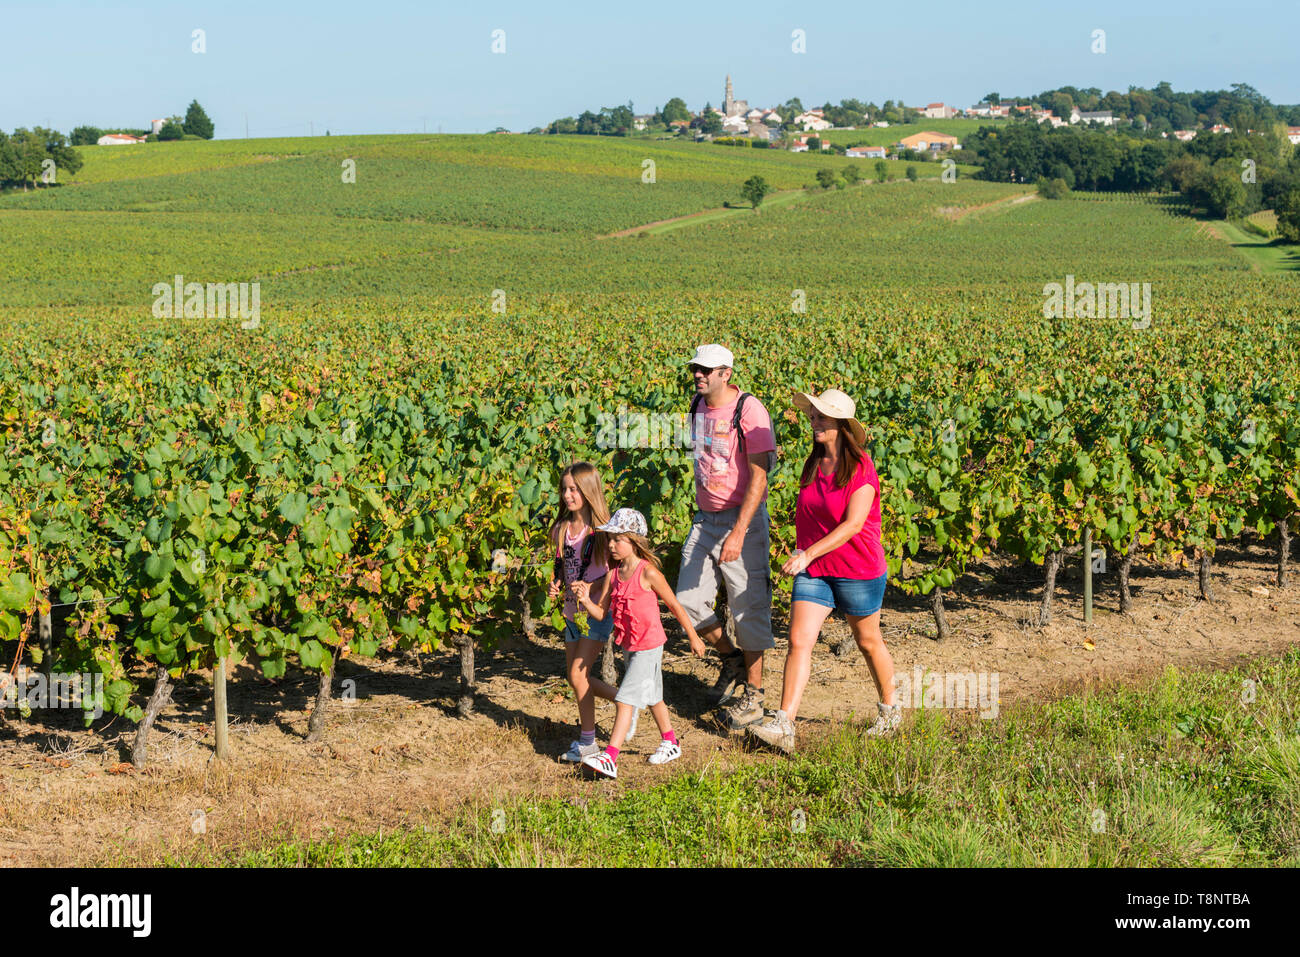 Family having a walk through vineyards in Saint-Fiacre-sur-Maine Couple, parents with their two daughters walking on a path in the countryside - Stock Image